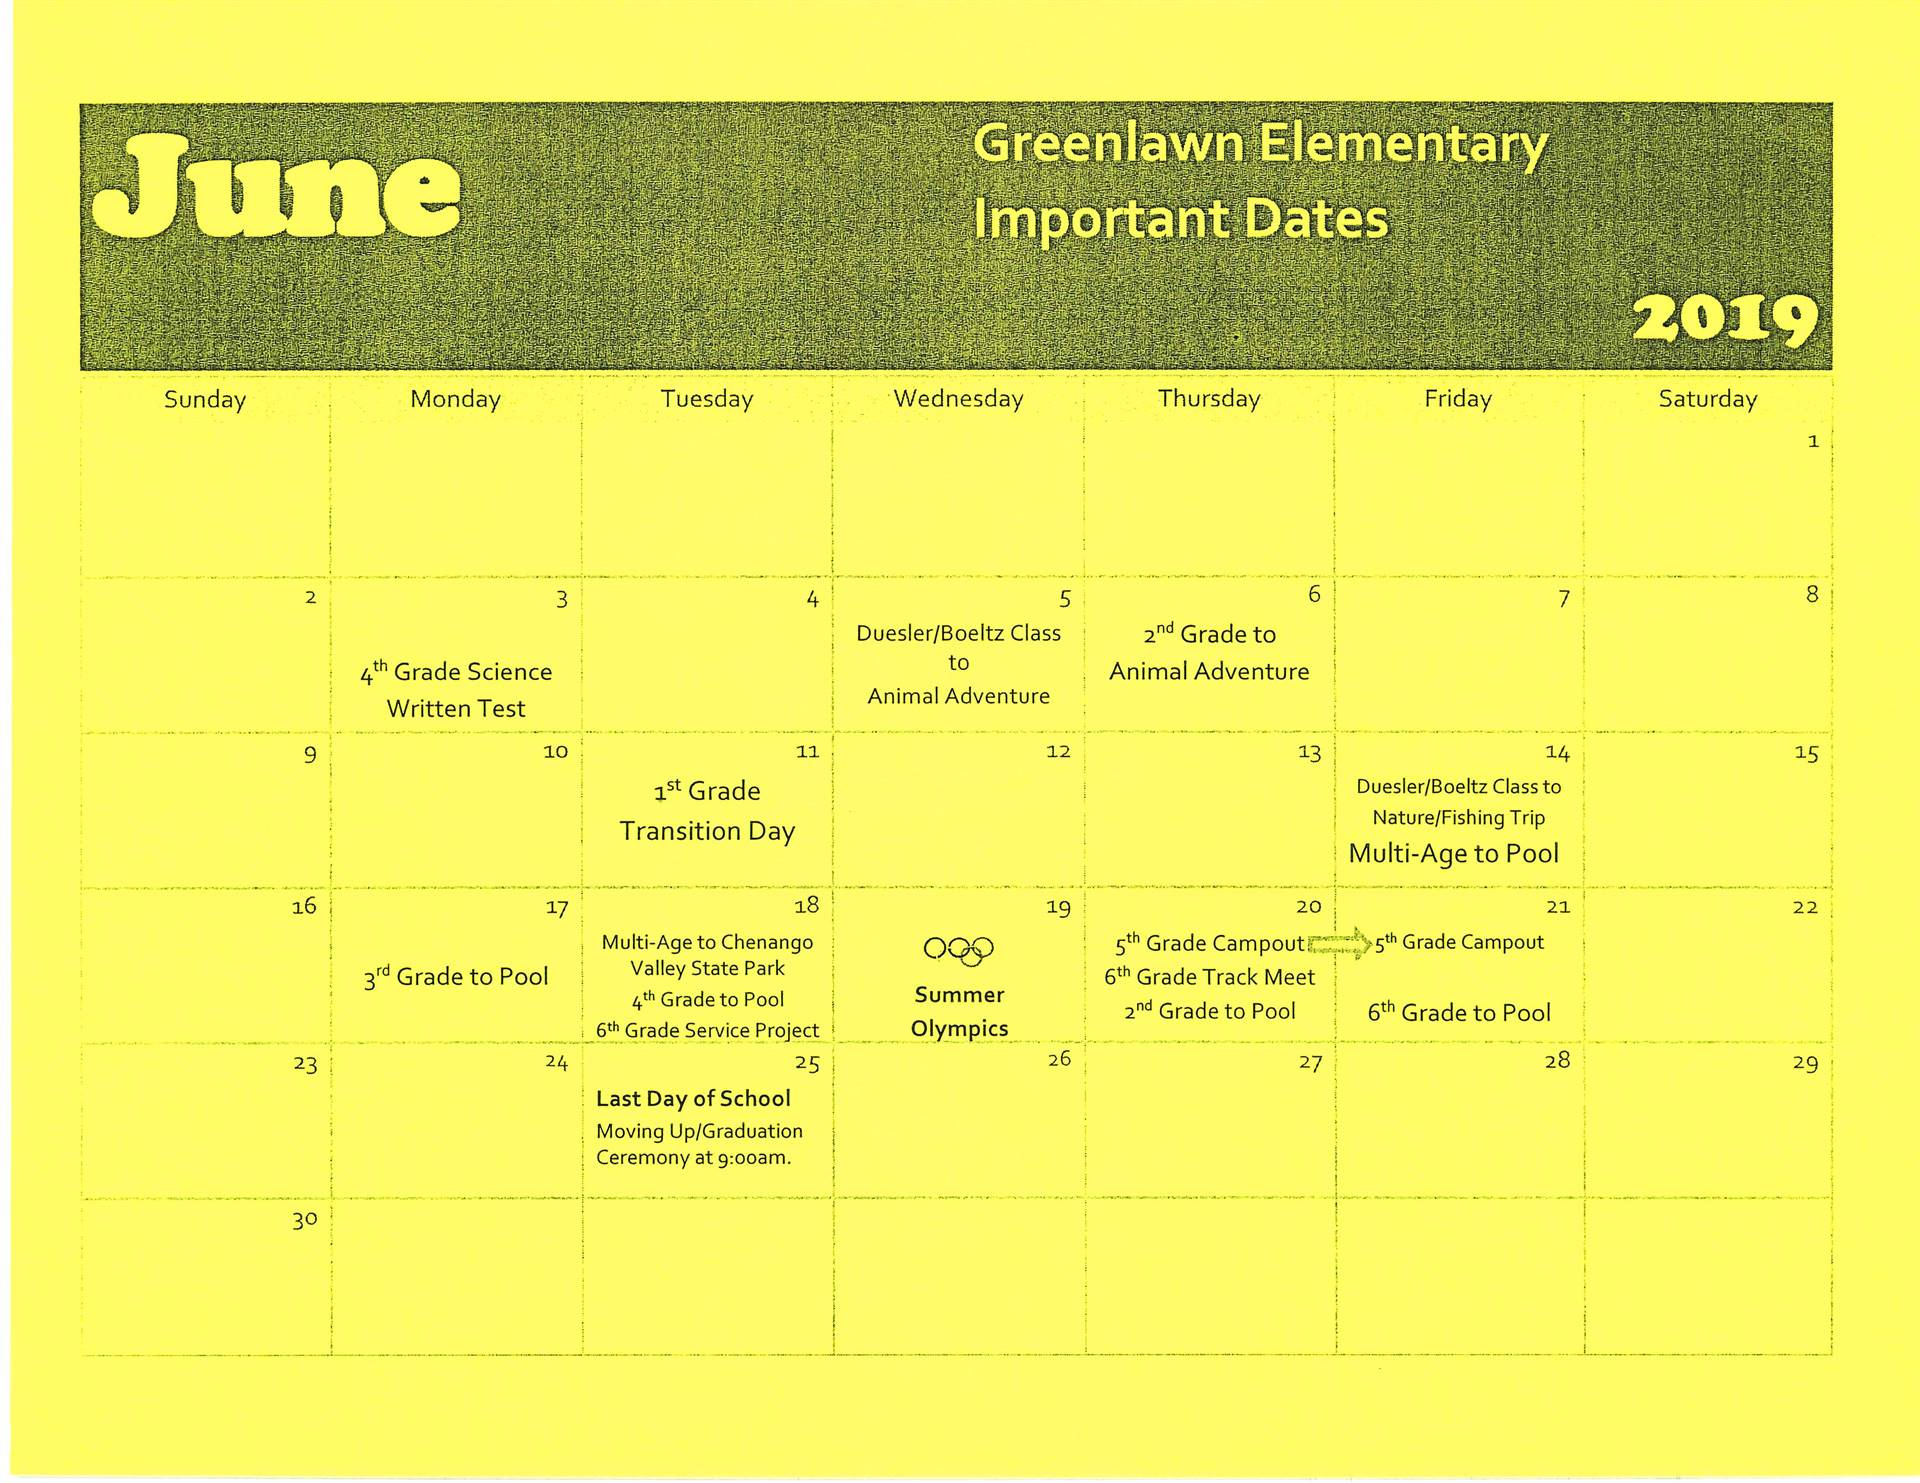 June Calendar of Events for Greenlawn